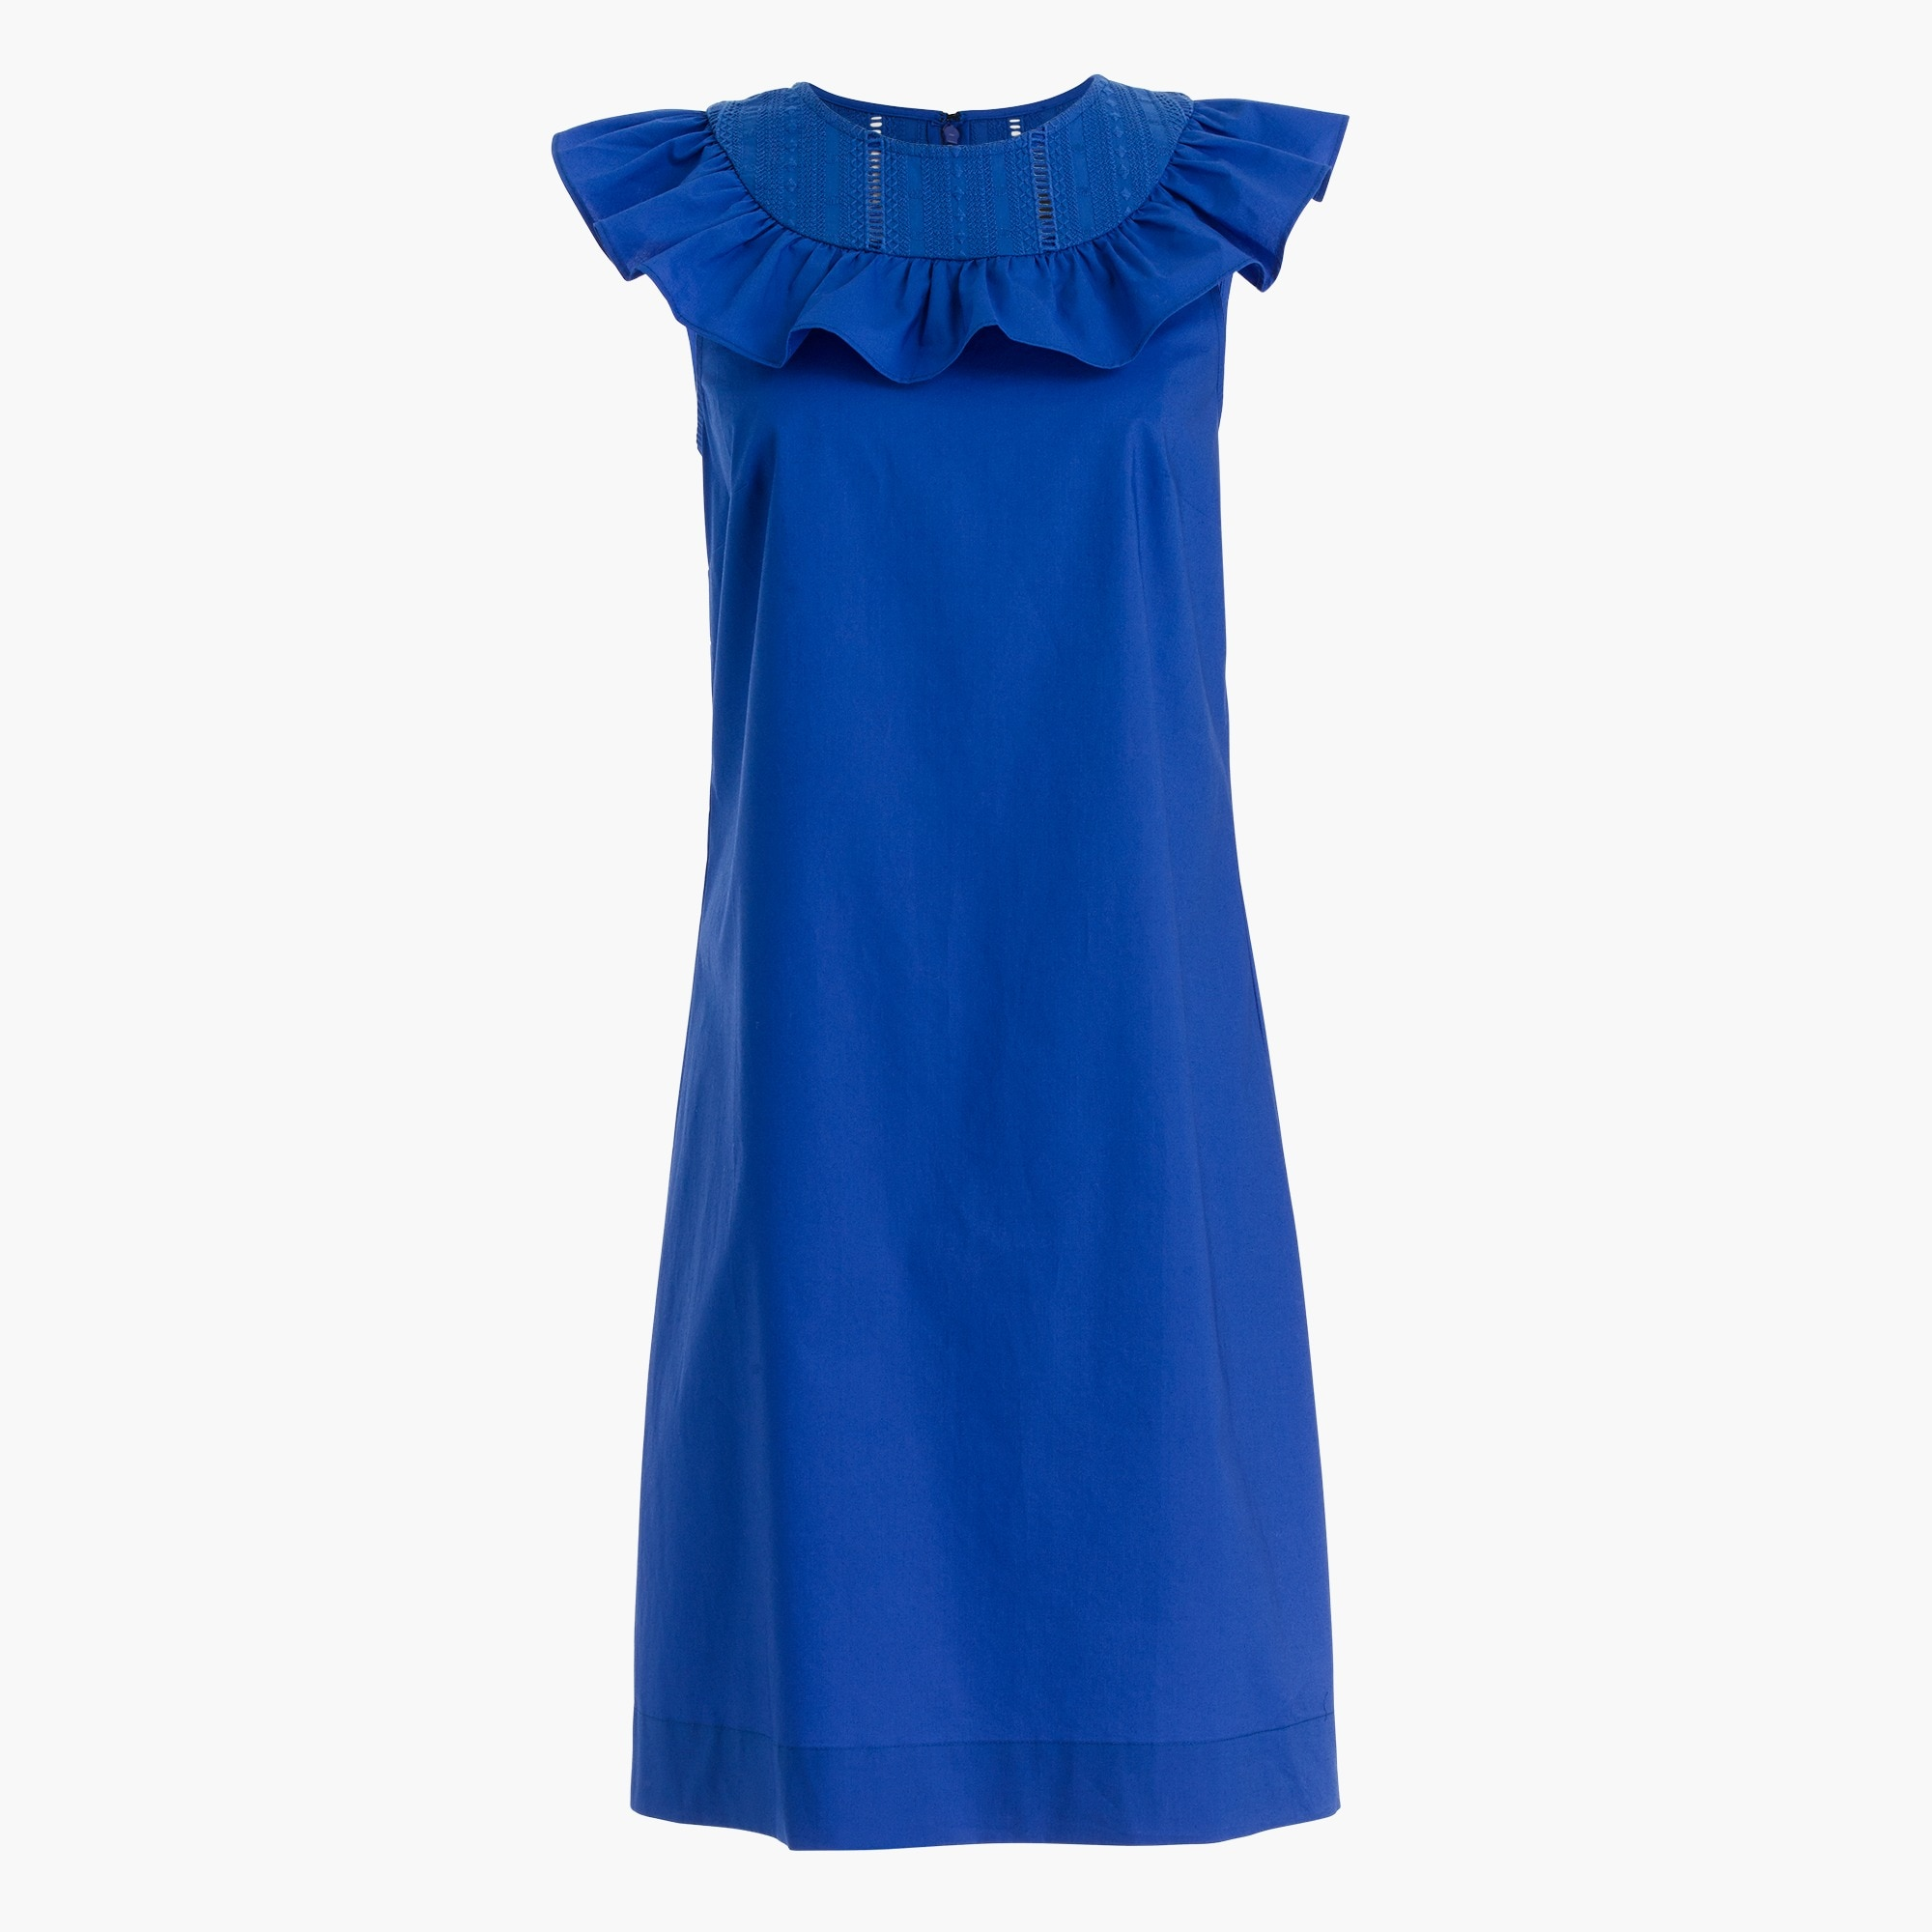 Petite ruffle-neck dress